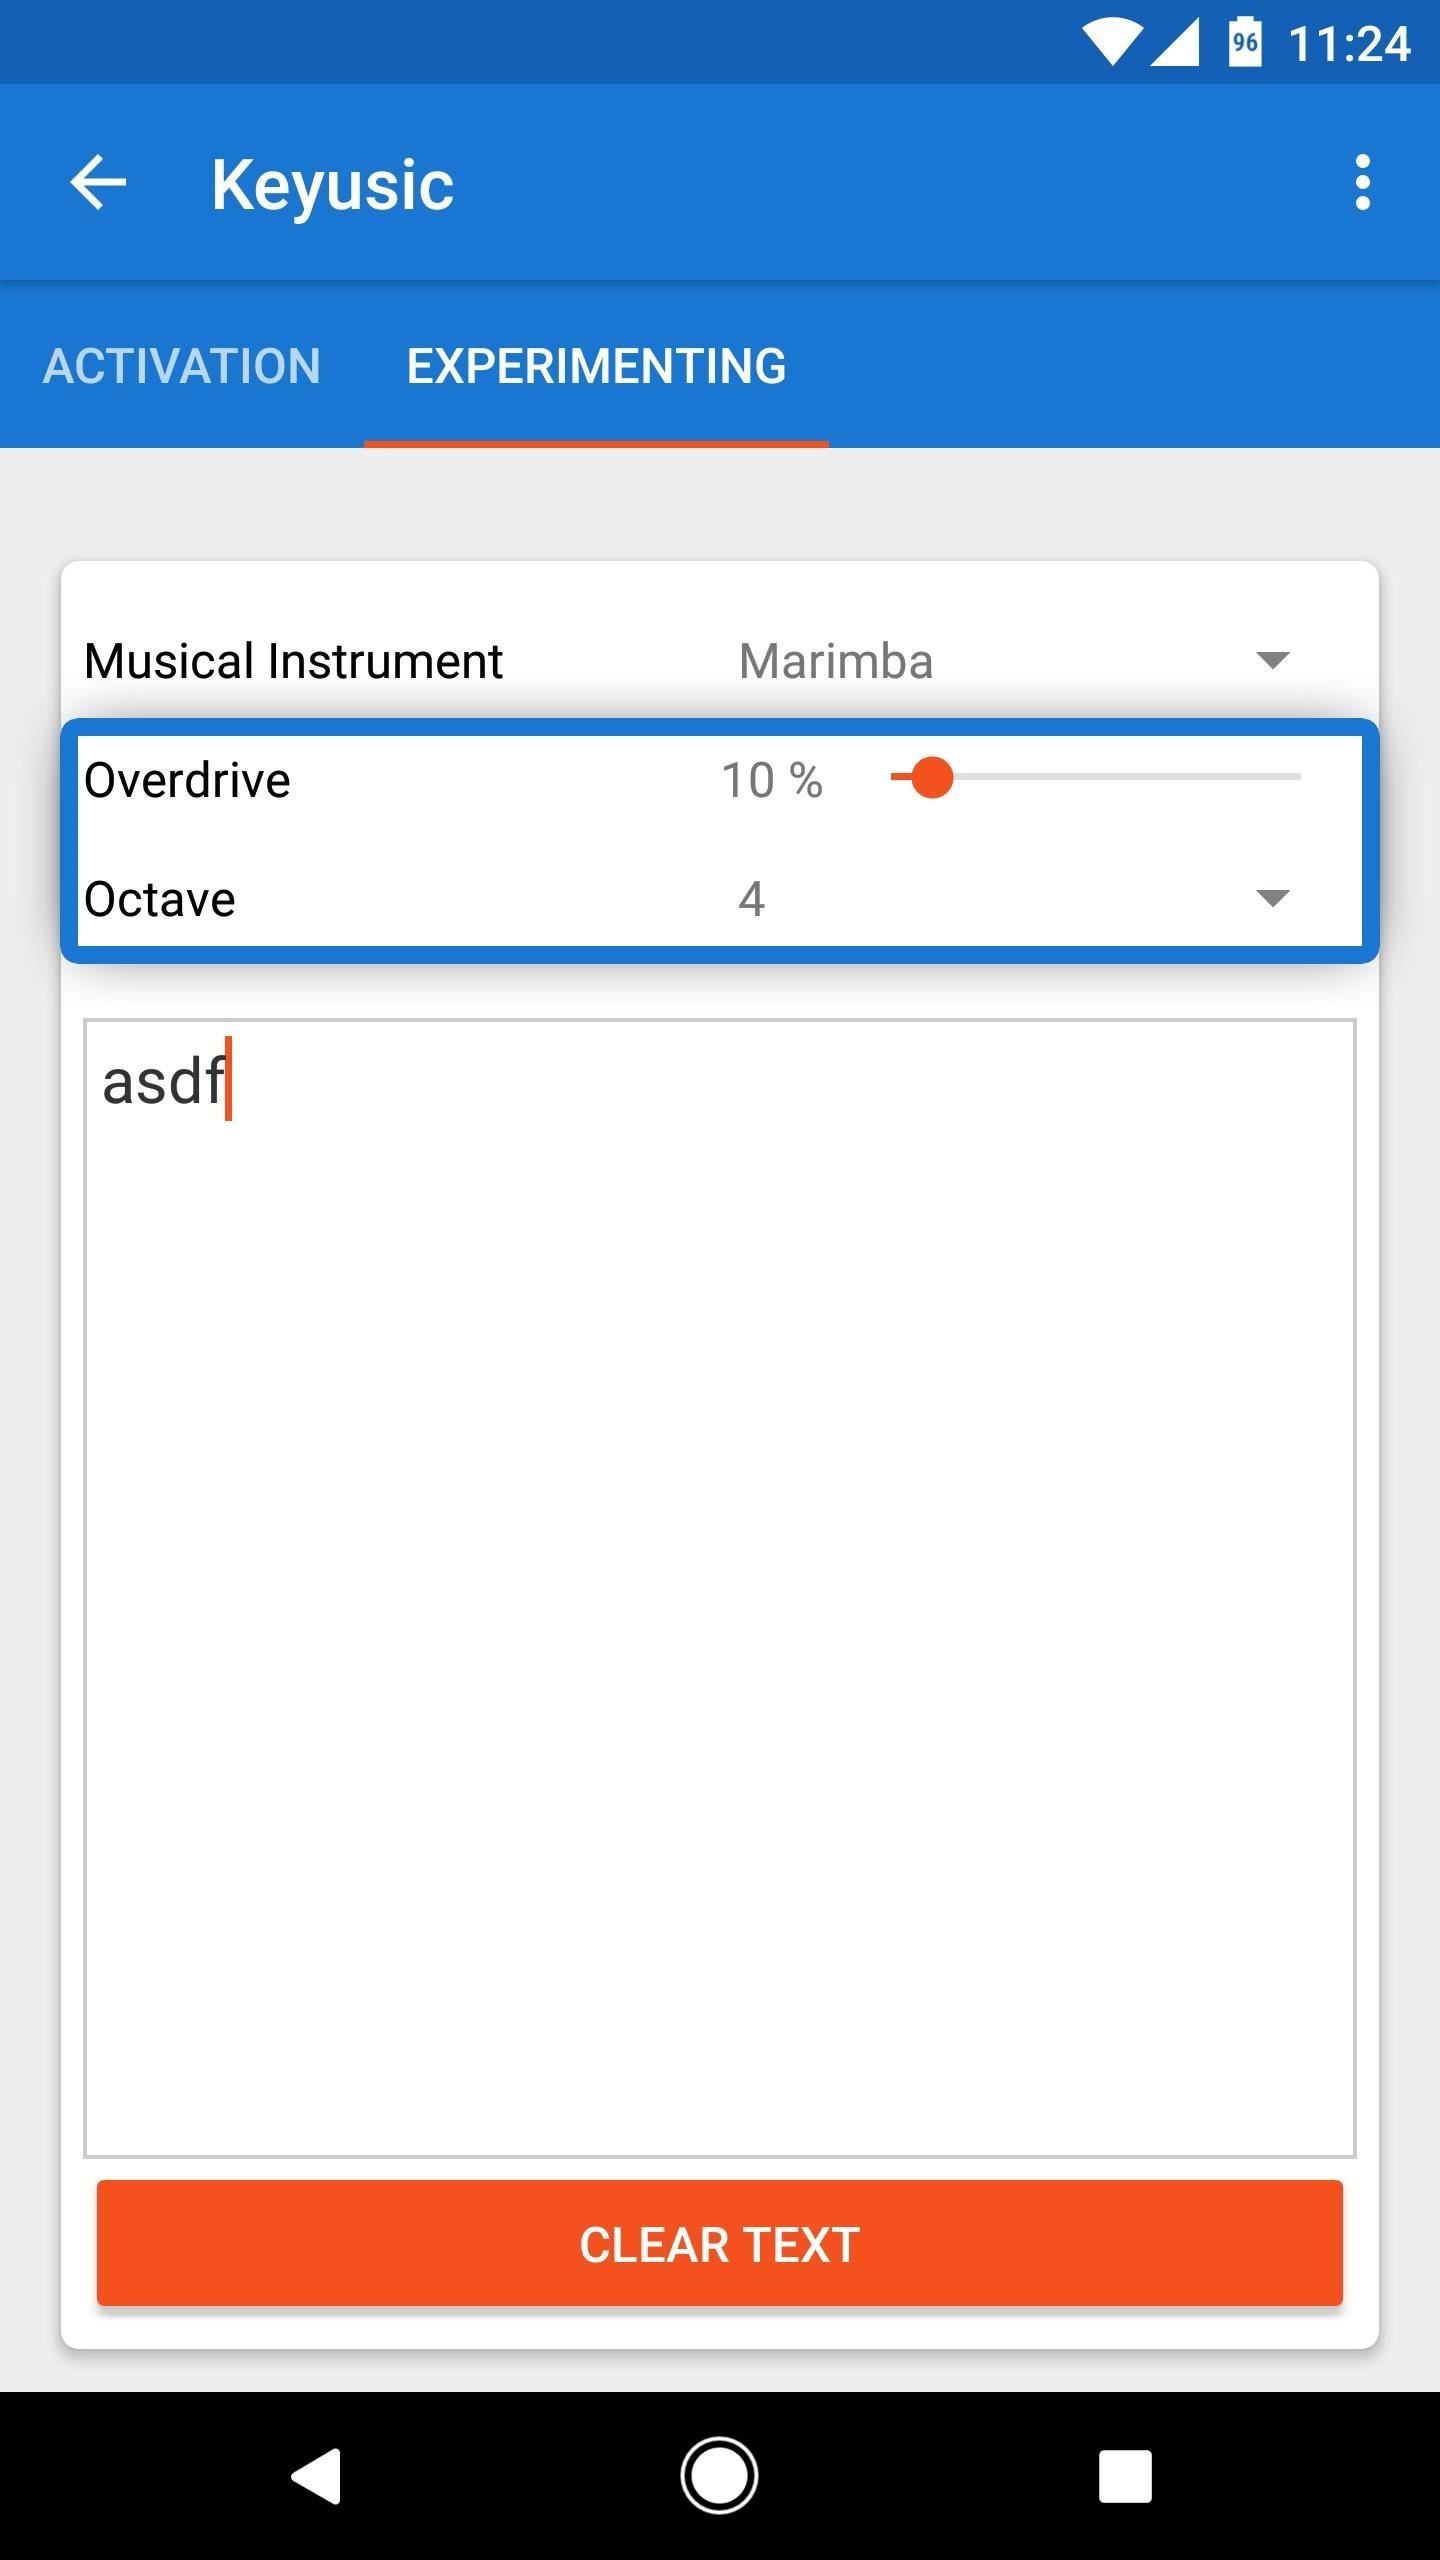 How to Make Any Android Keyboard Play Sounds as You Type